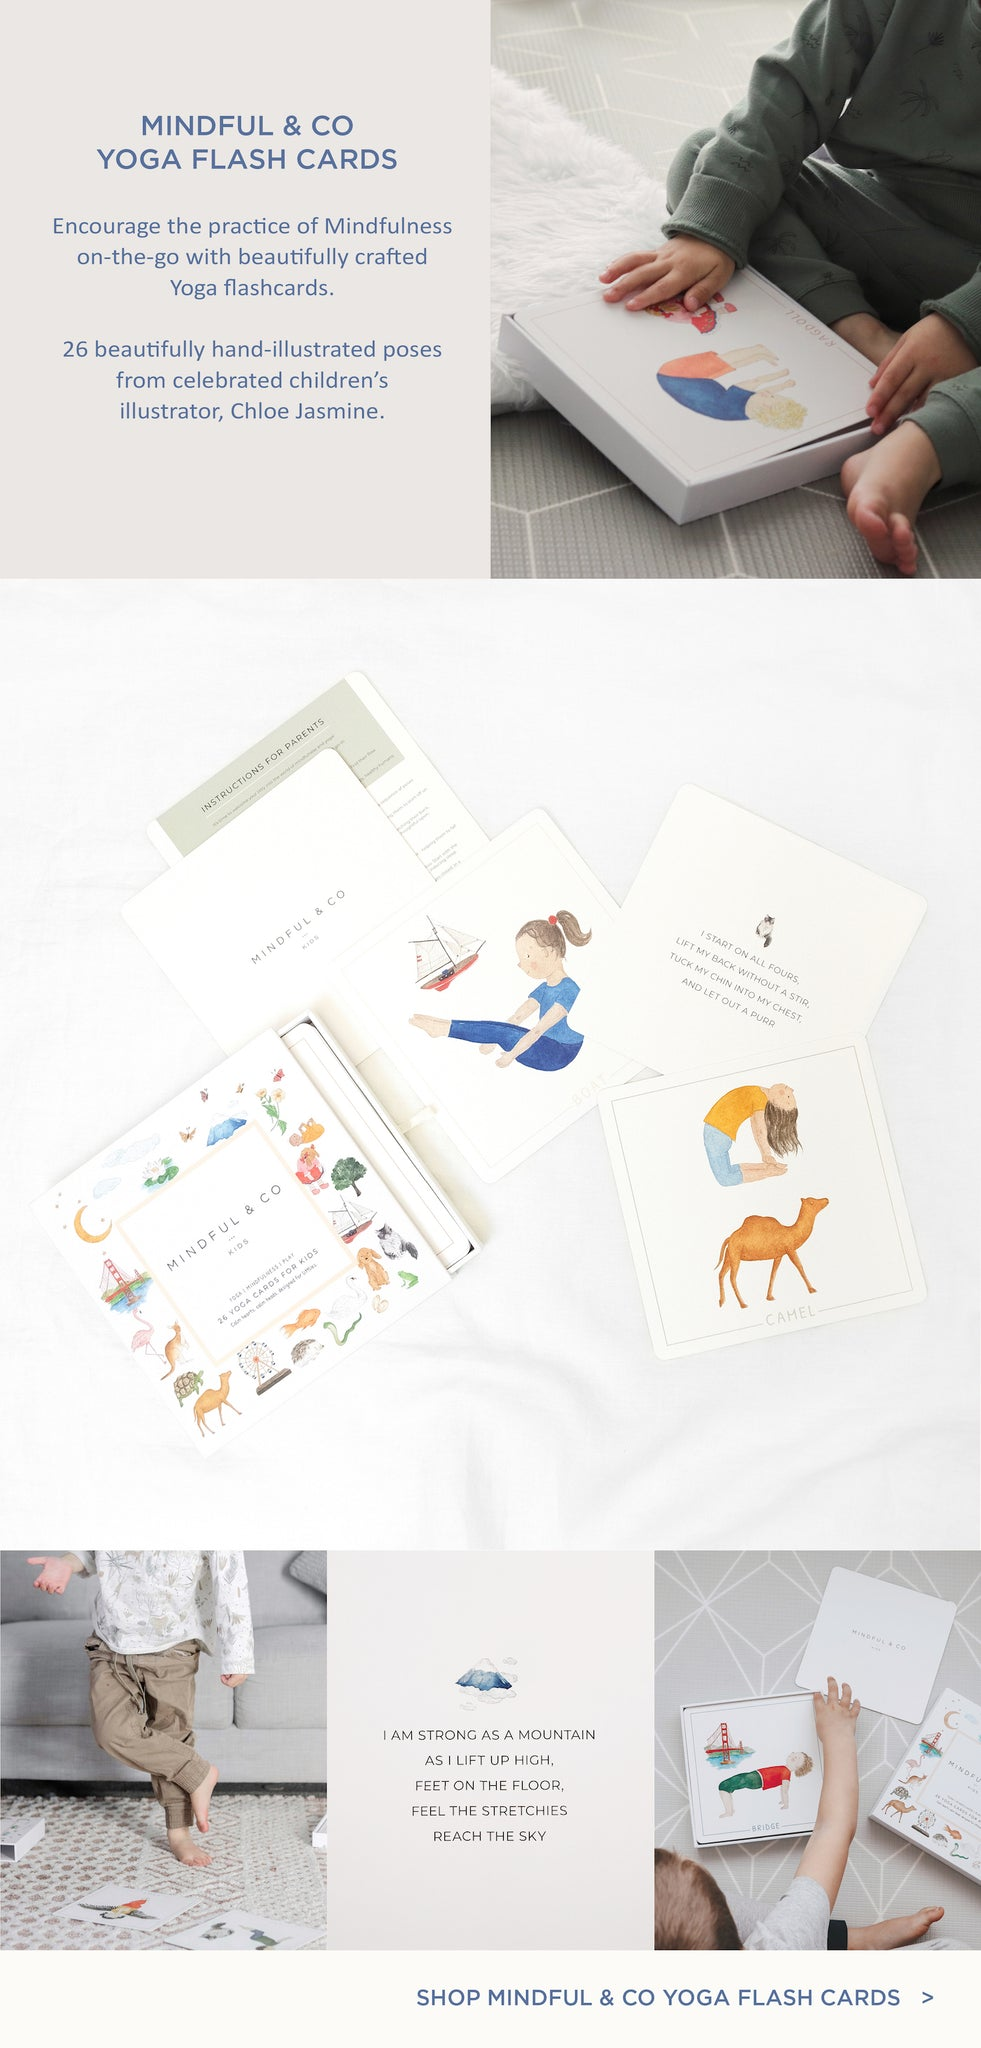 Paper Plane - Mindful & Co - Yoga Flash Cards - Kids Gift - NZ Stockist